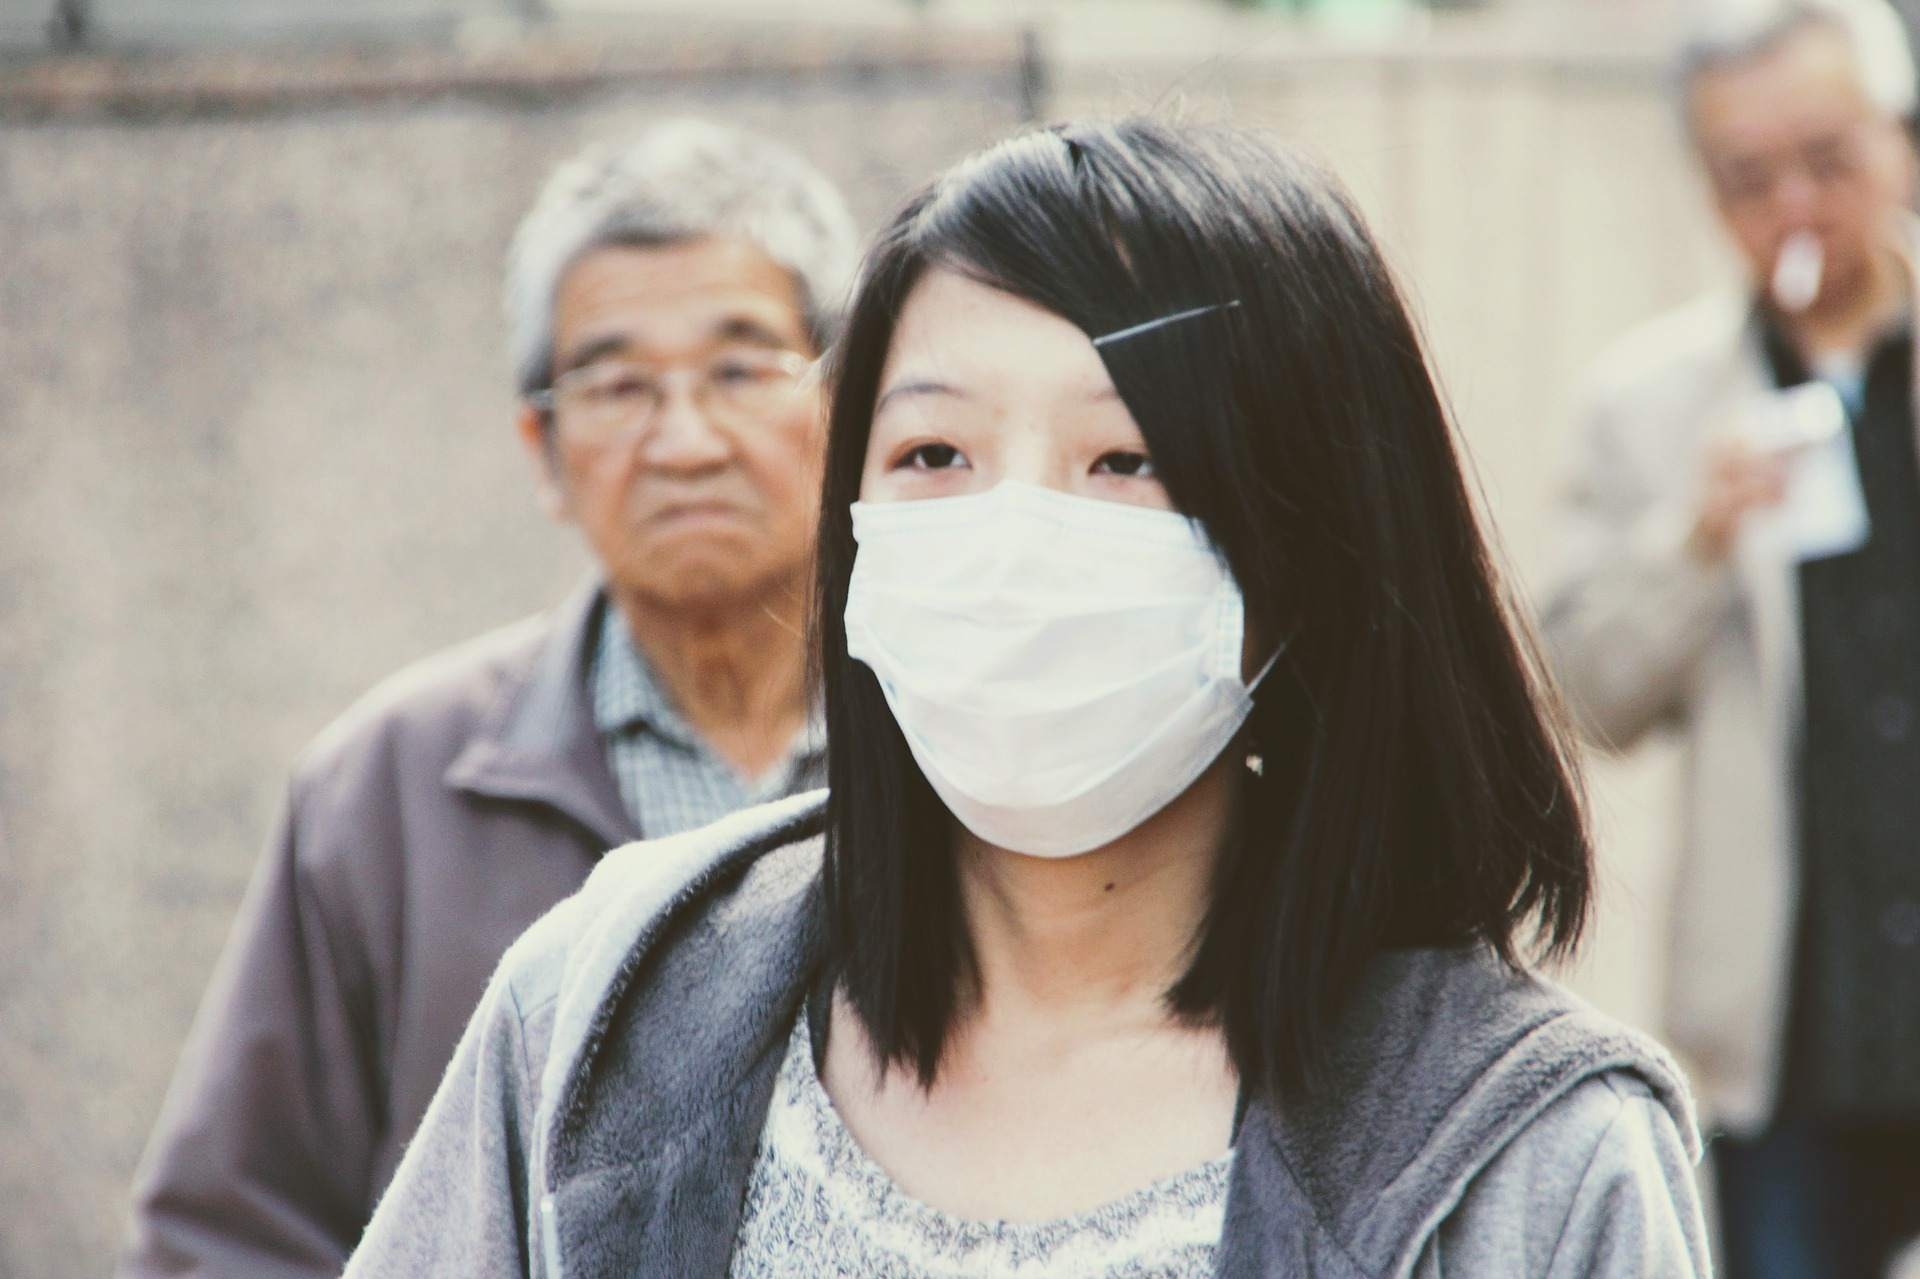 Young Asian woman wearing a protective face mask.